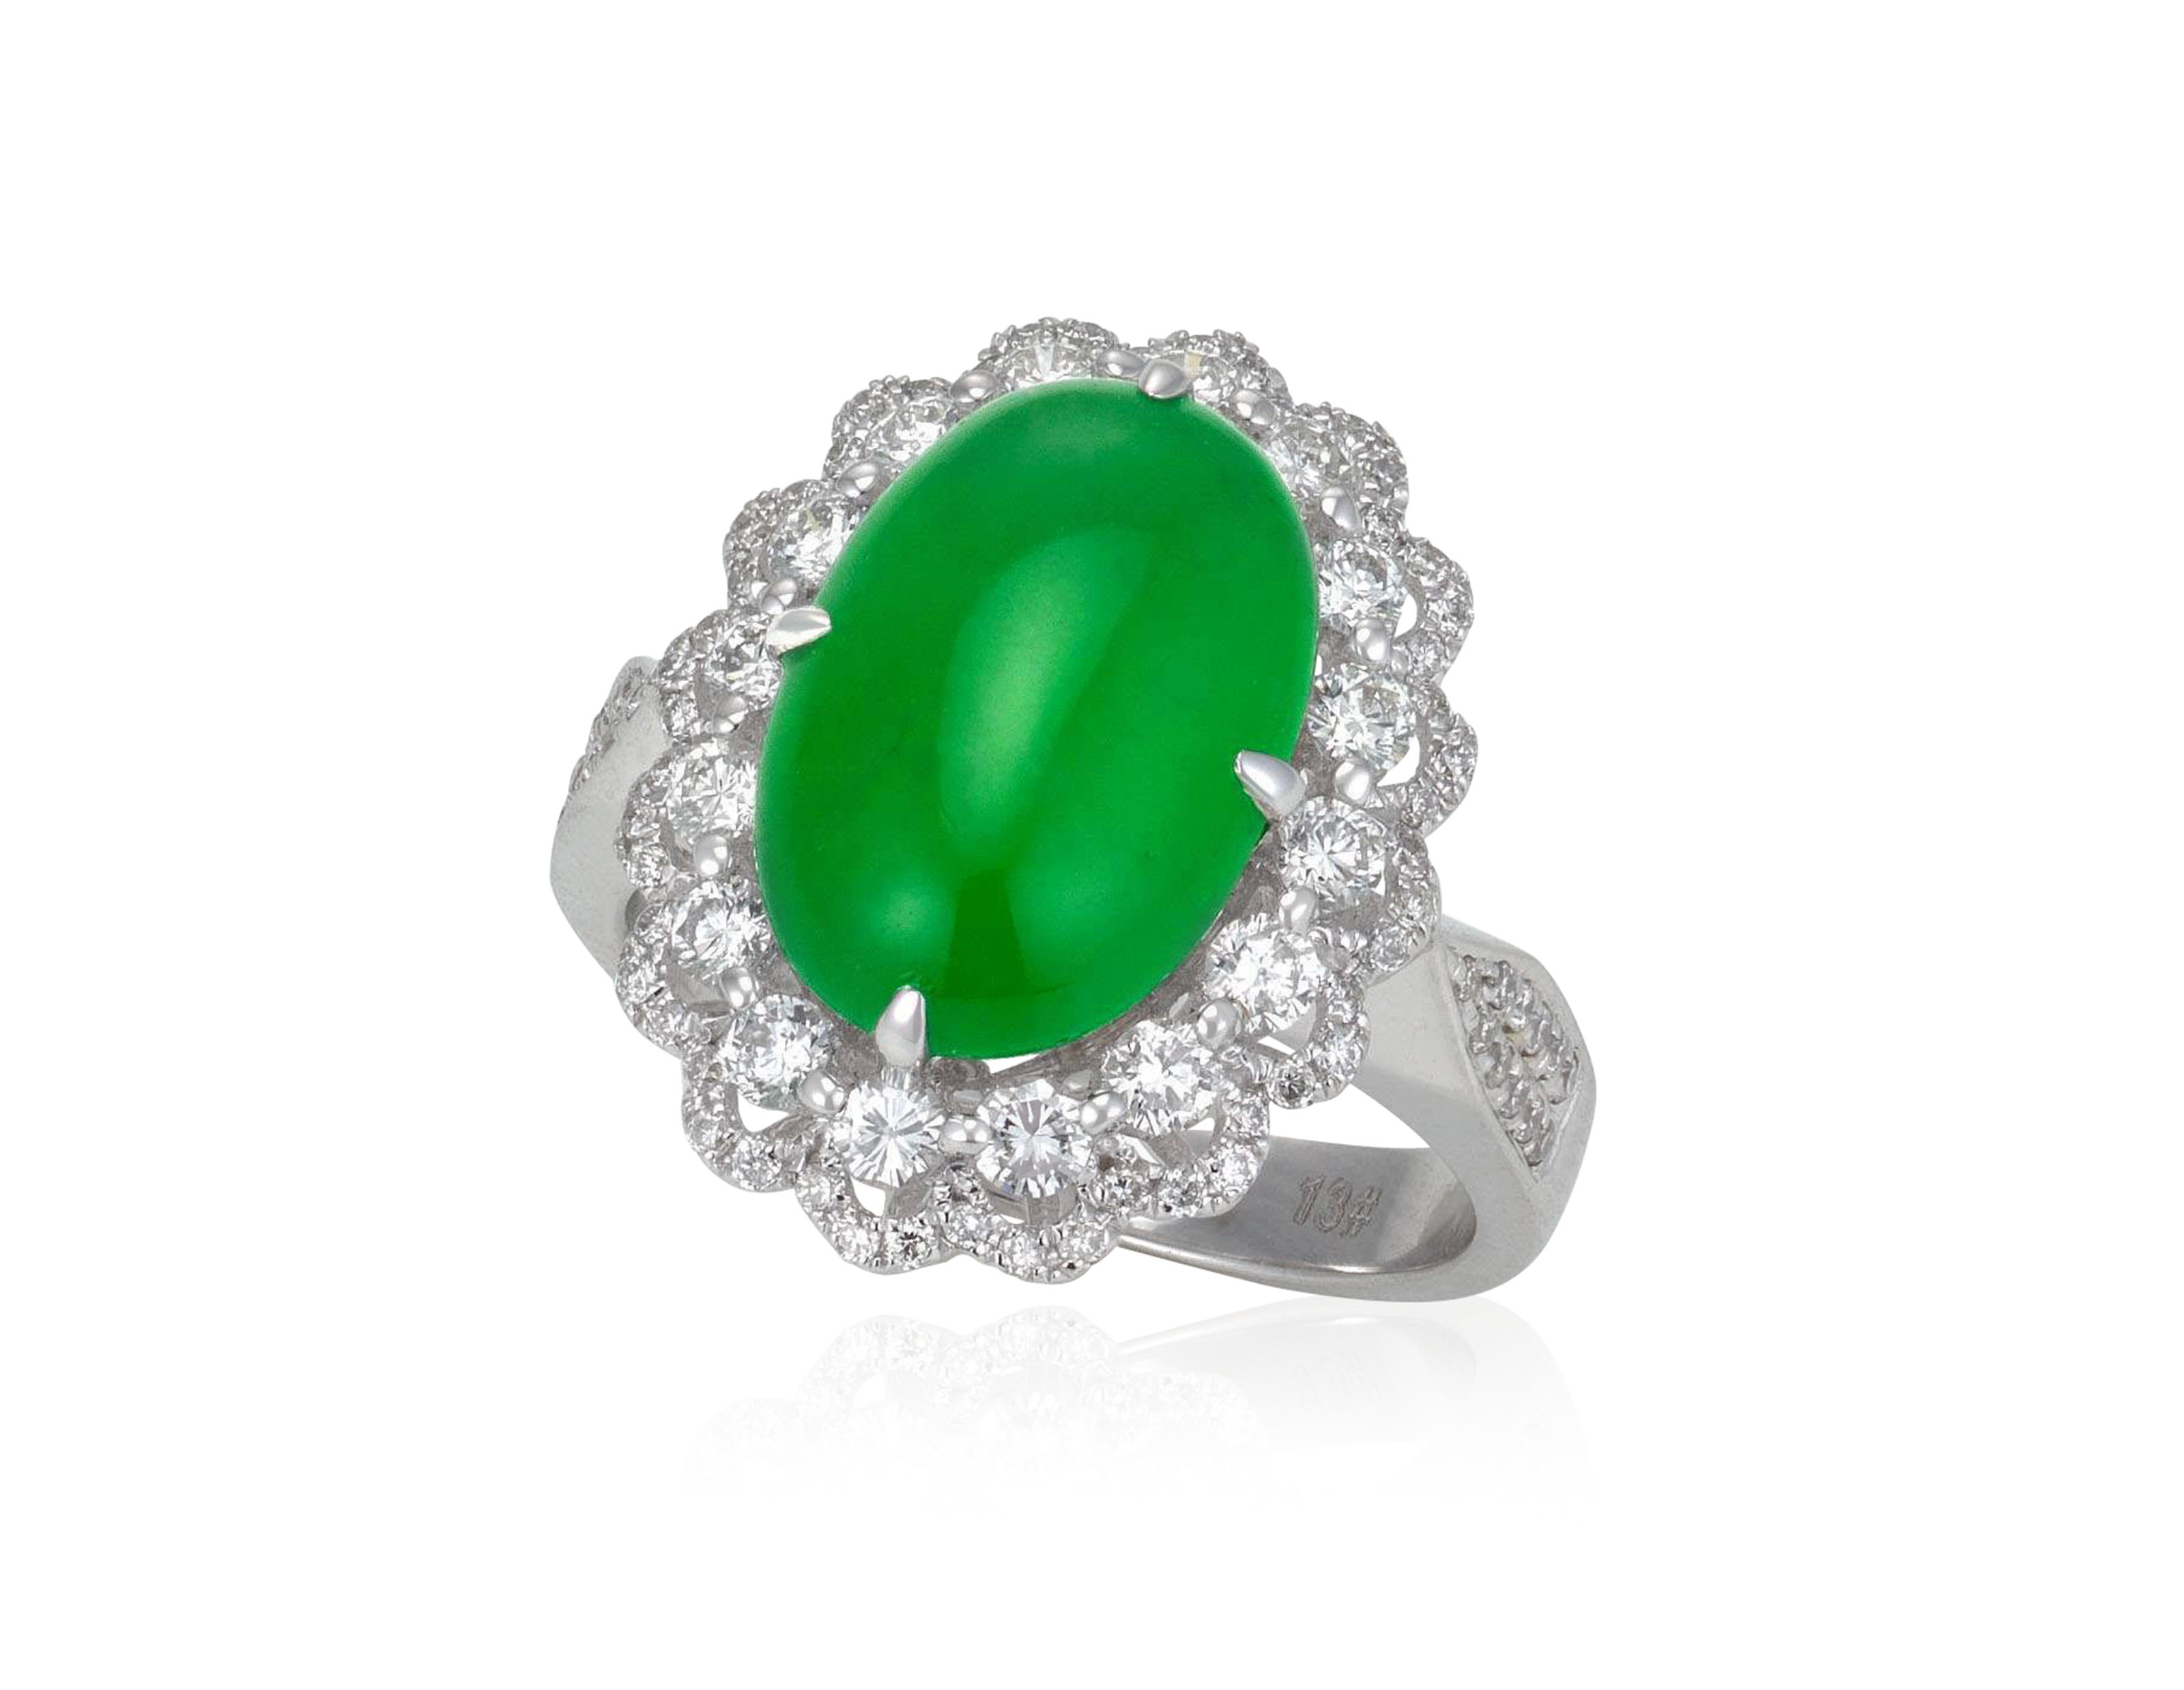 42a1bd0e94b05 JADEITE AND DIAMOND RING WITH REPORT